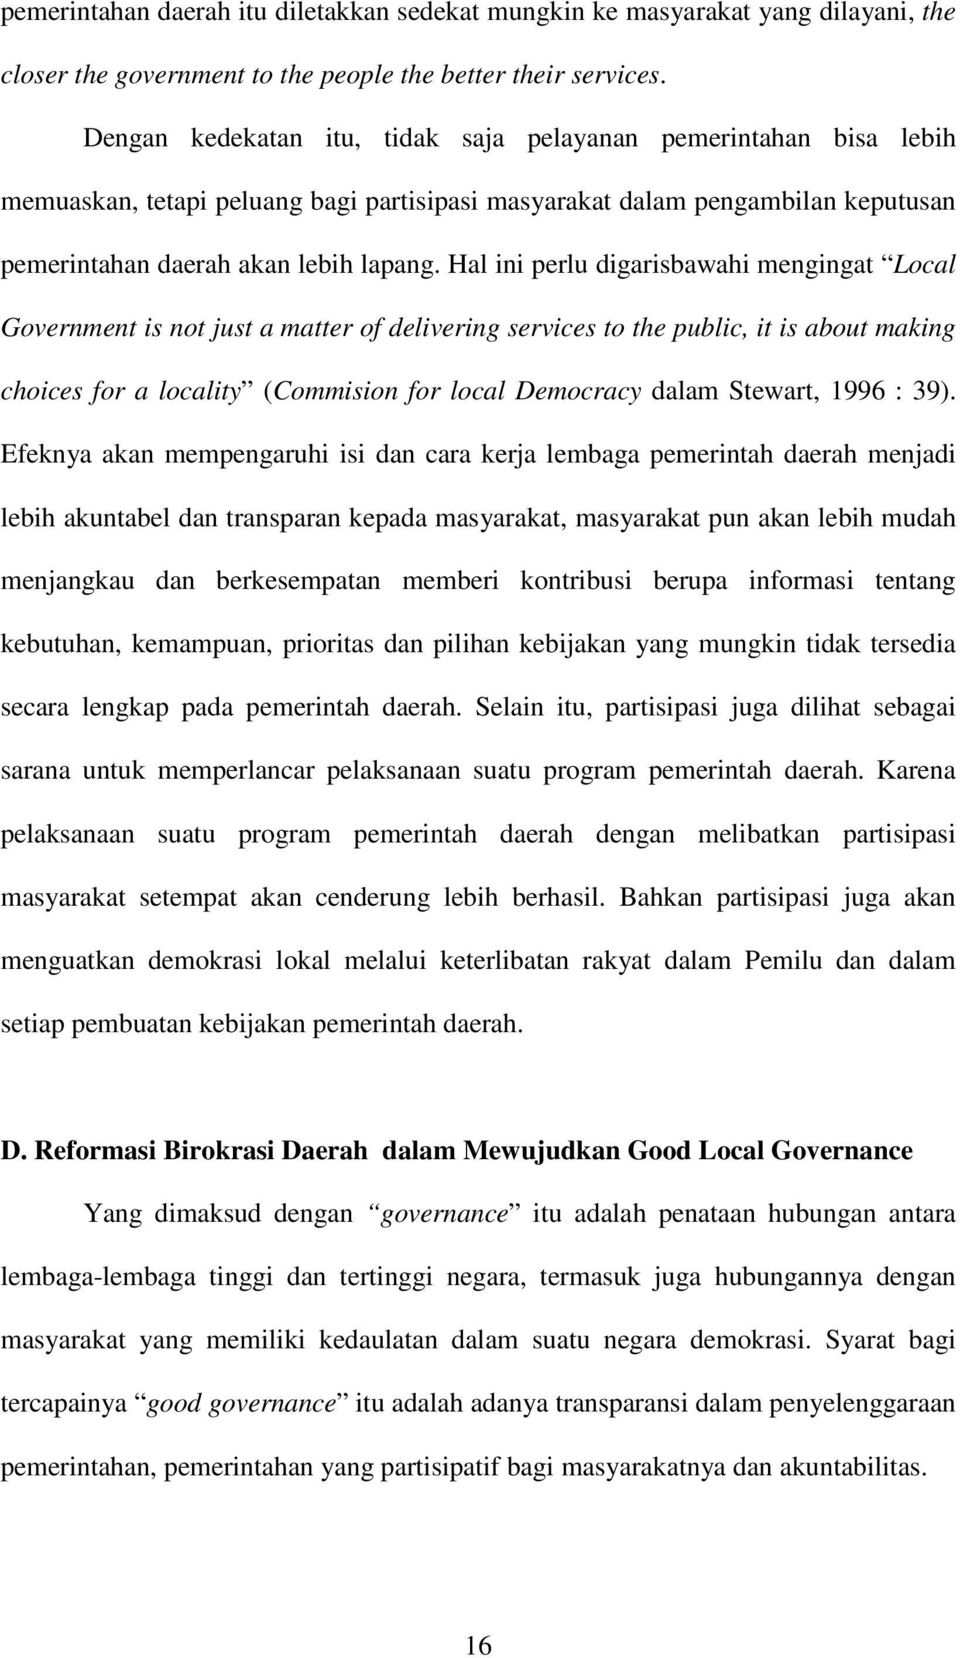 Hal ini perlu digarisbawahi mengingat Local Government is not just a matter of delivering services to the public, it is about making choices for a locality (Commision for local Democracy dalam